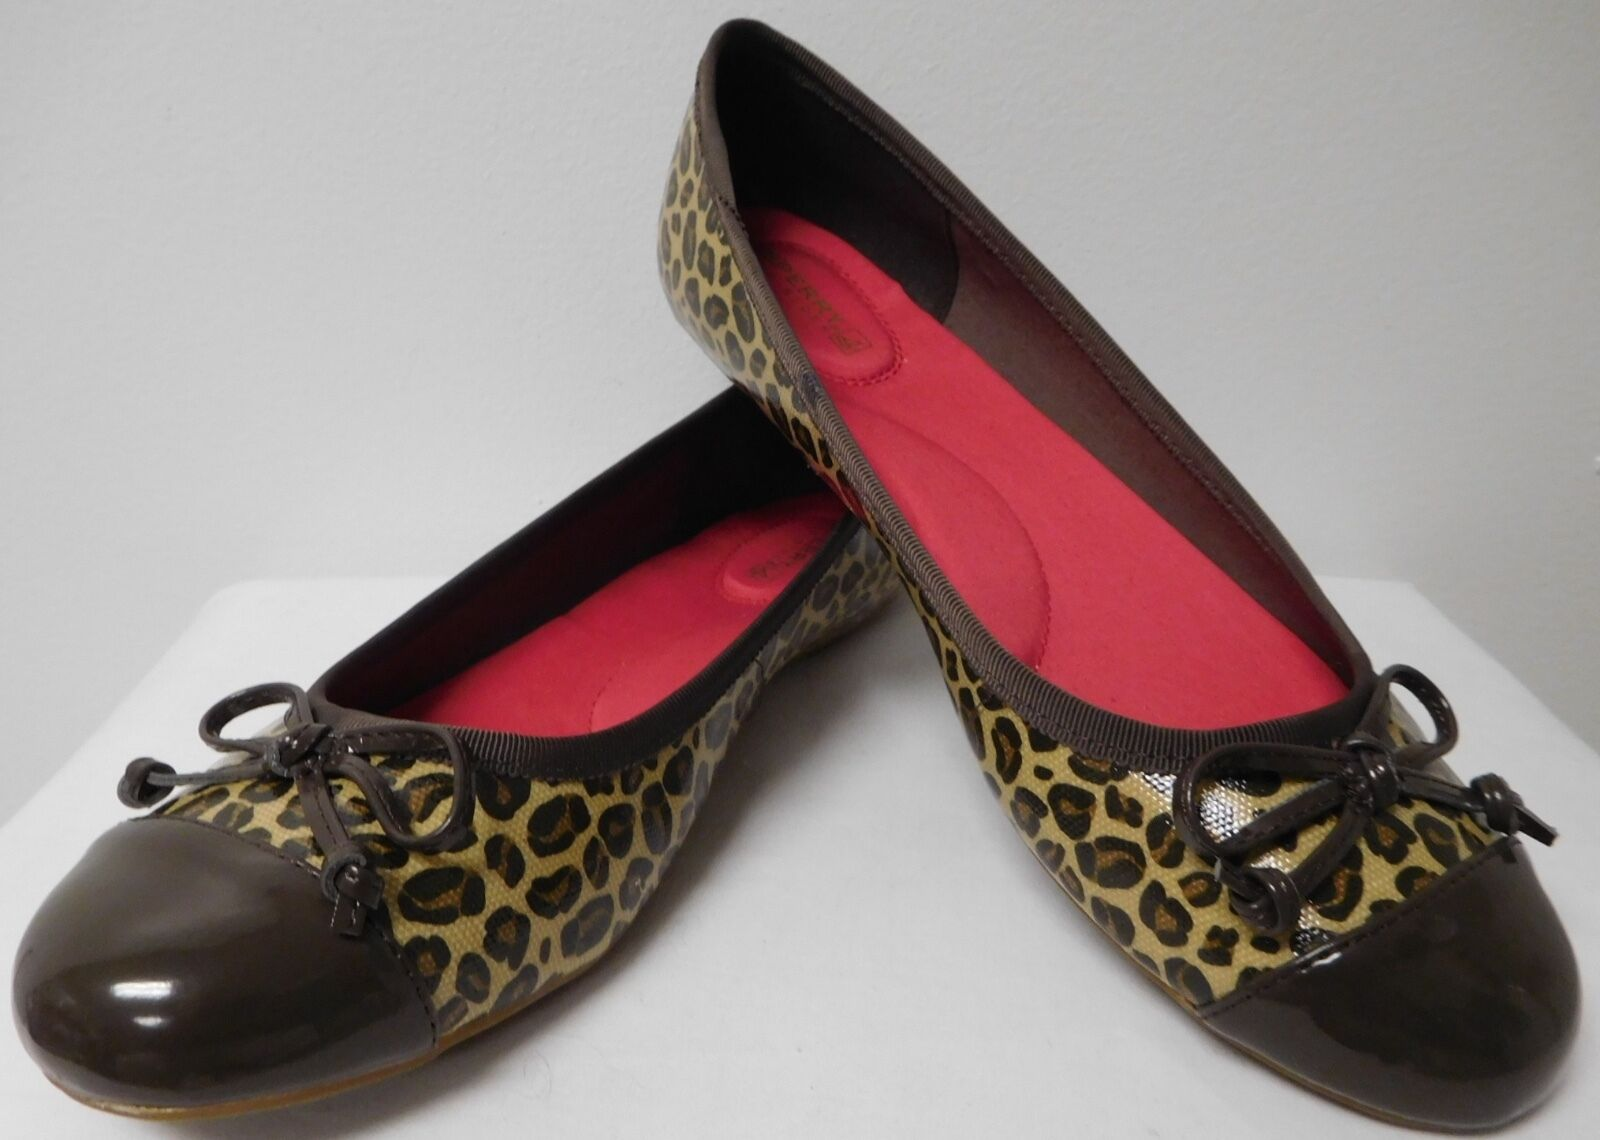 SPERRY TOP-SIDER LEOPARD ANIMAL PRINT PATENT CAP TOE BALLET FLATS COAT CANVAS 8